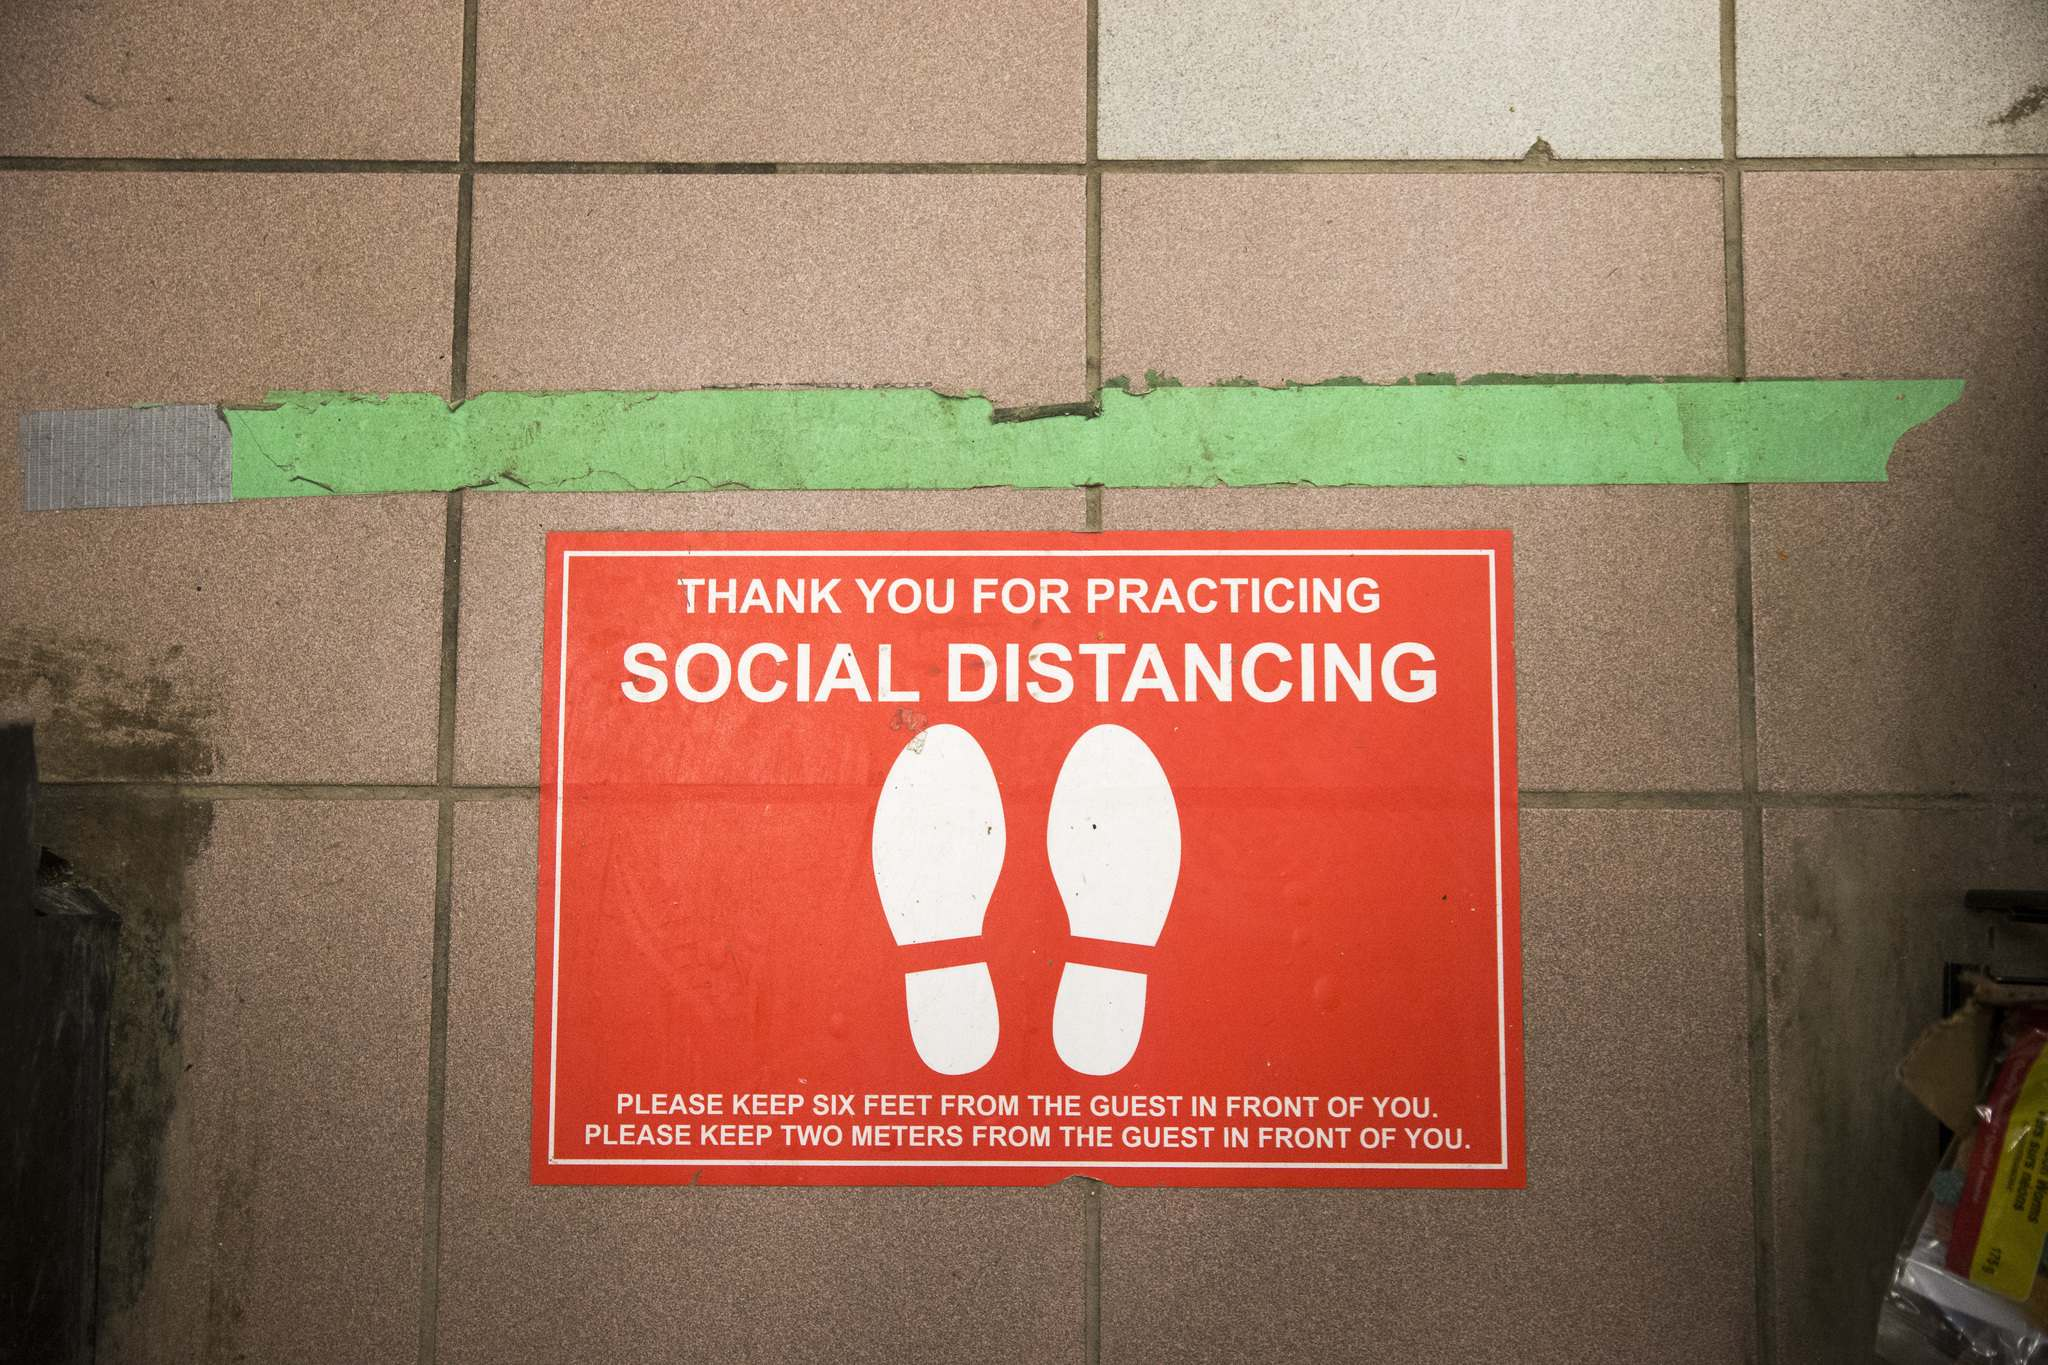 Gone are the days of chatting in grocery lines: social-distancing floor decals ensure shoppers remain two metres apart.</p></p>